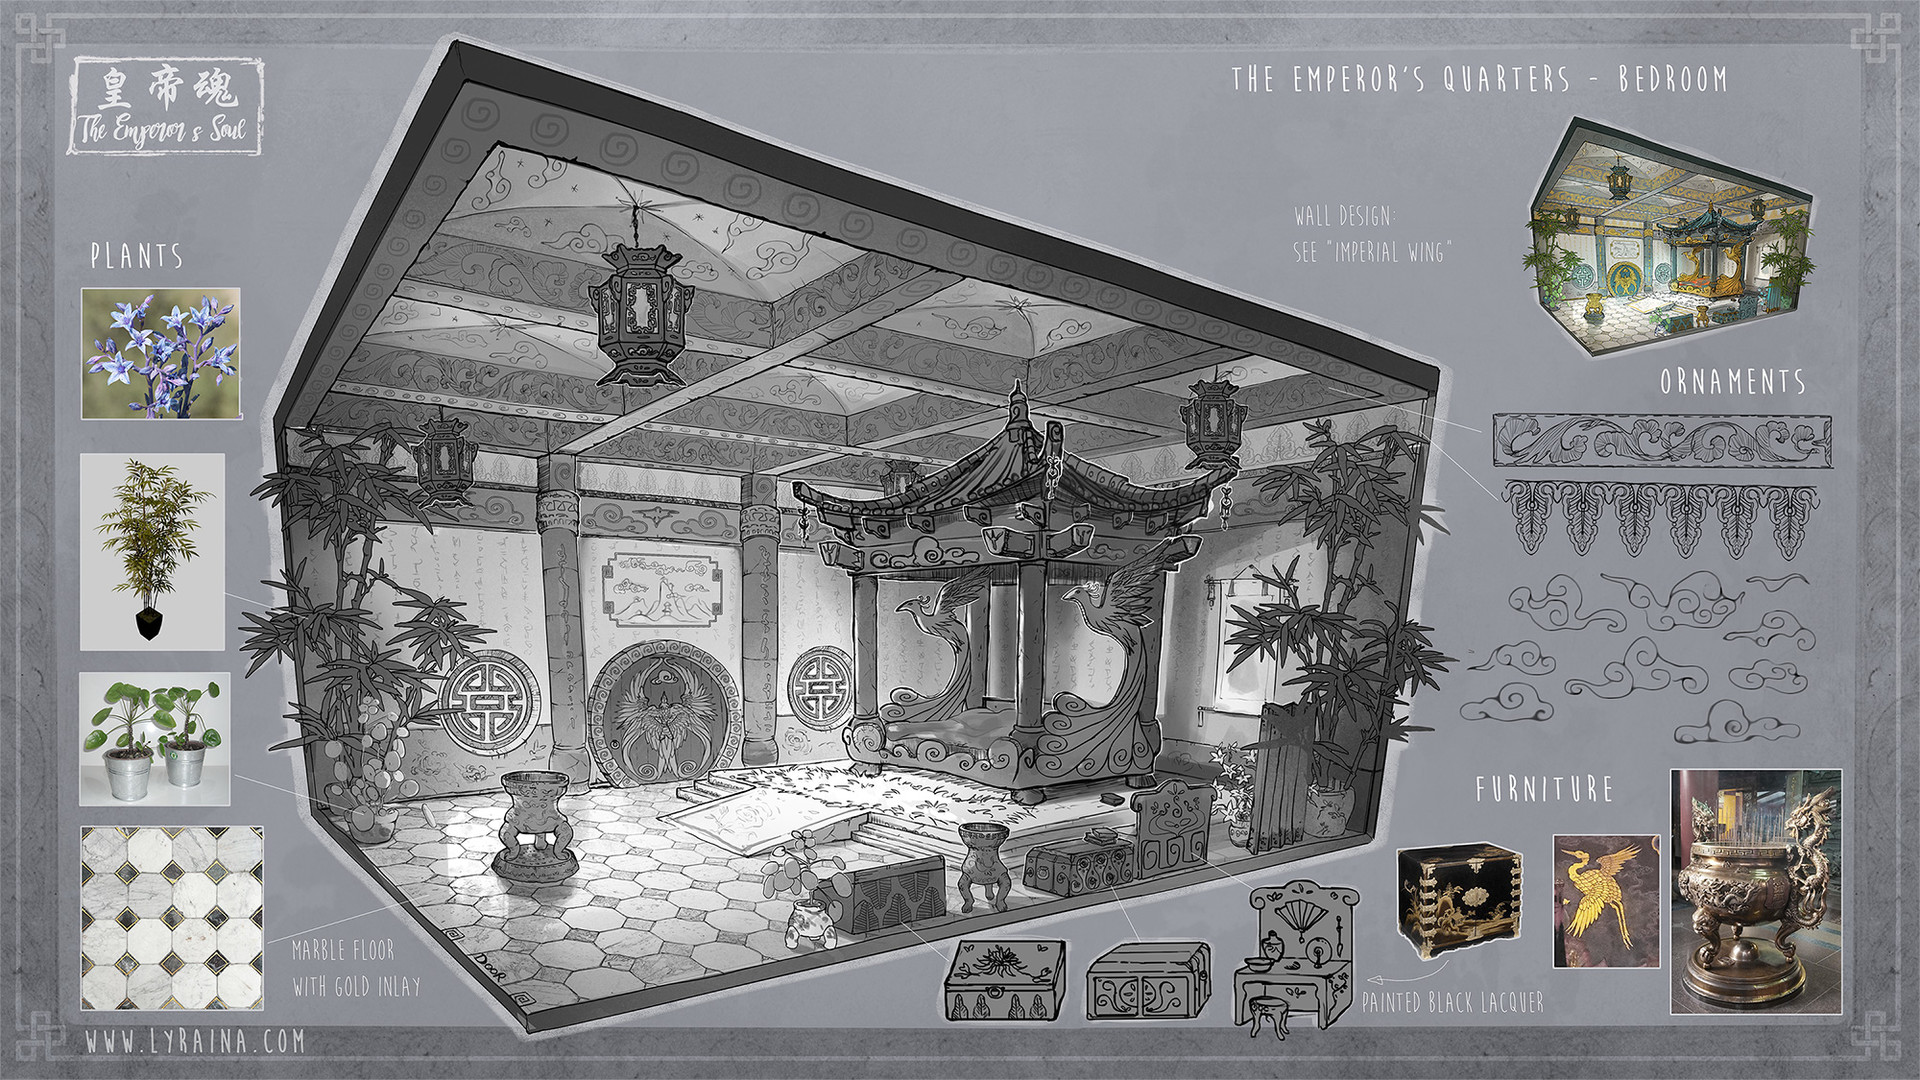 The imperial bedchamber. After his injury, The Emperor does not leave this place.